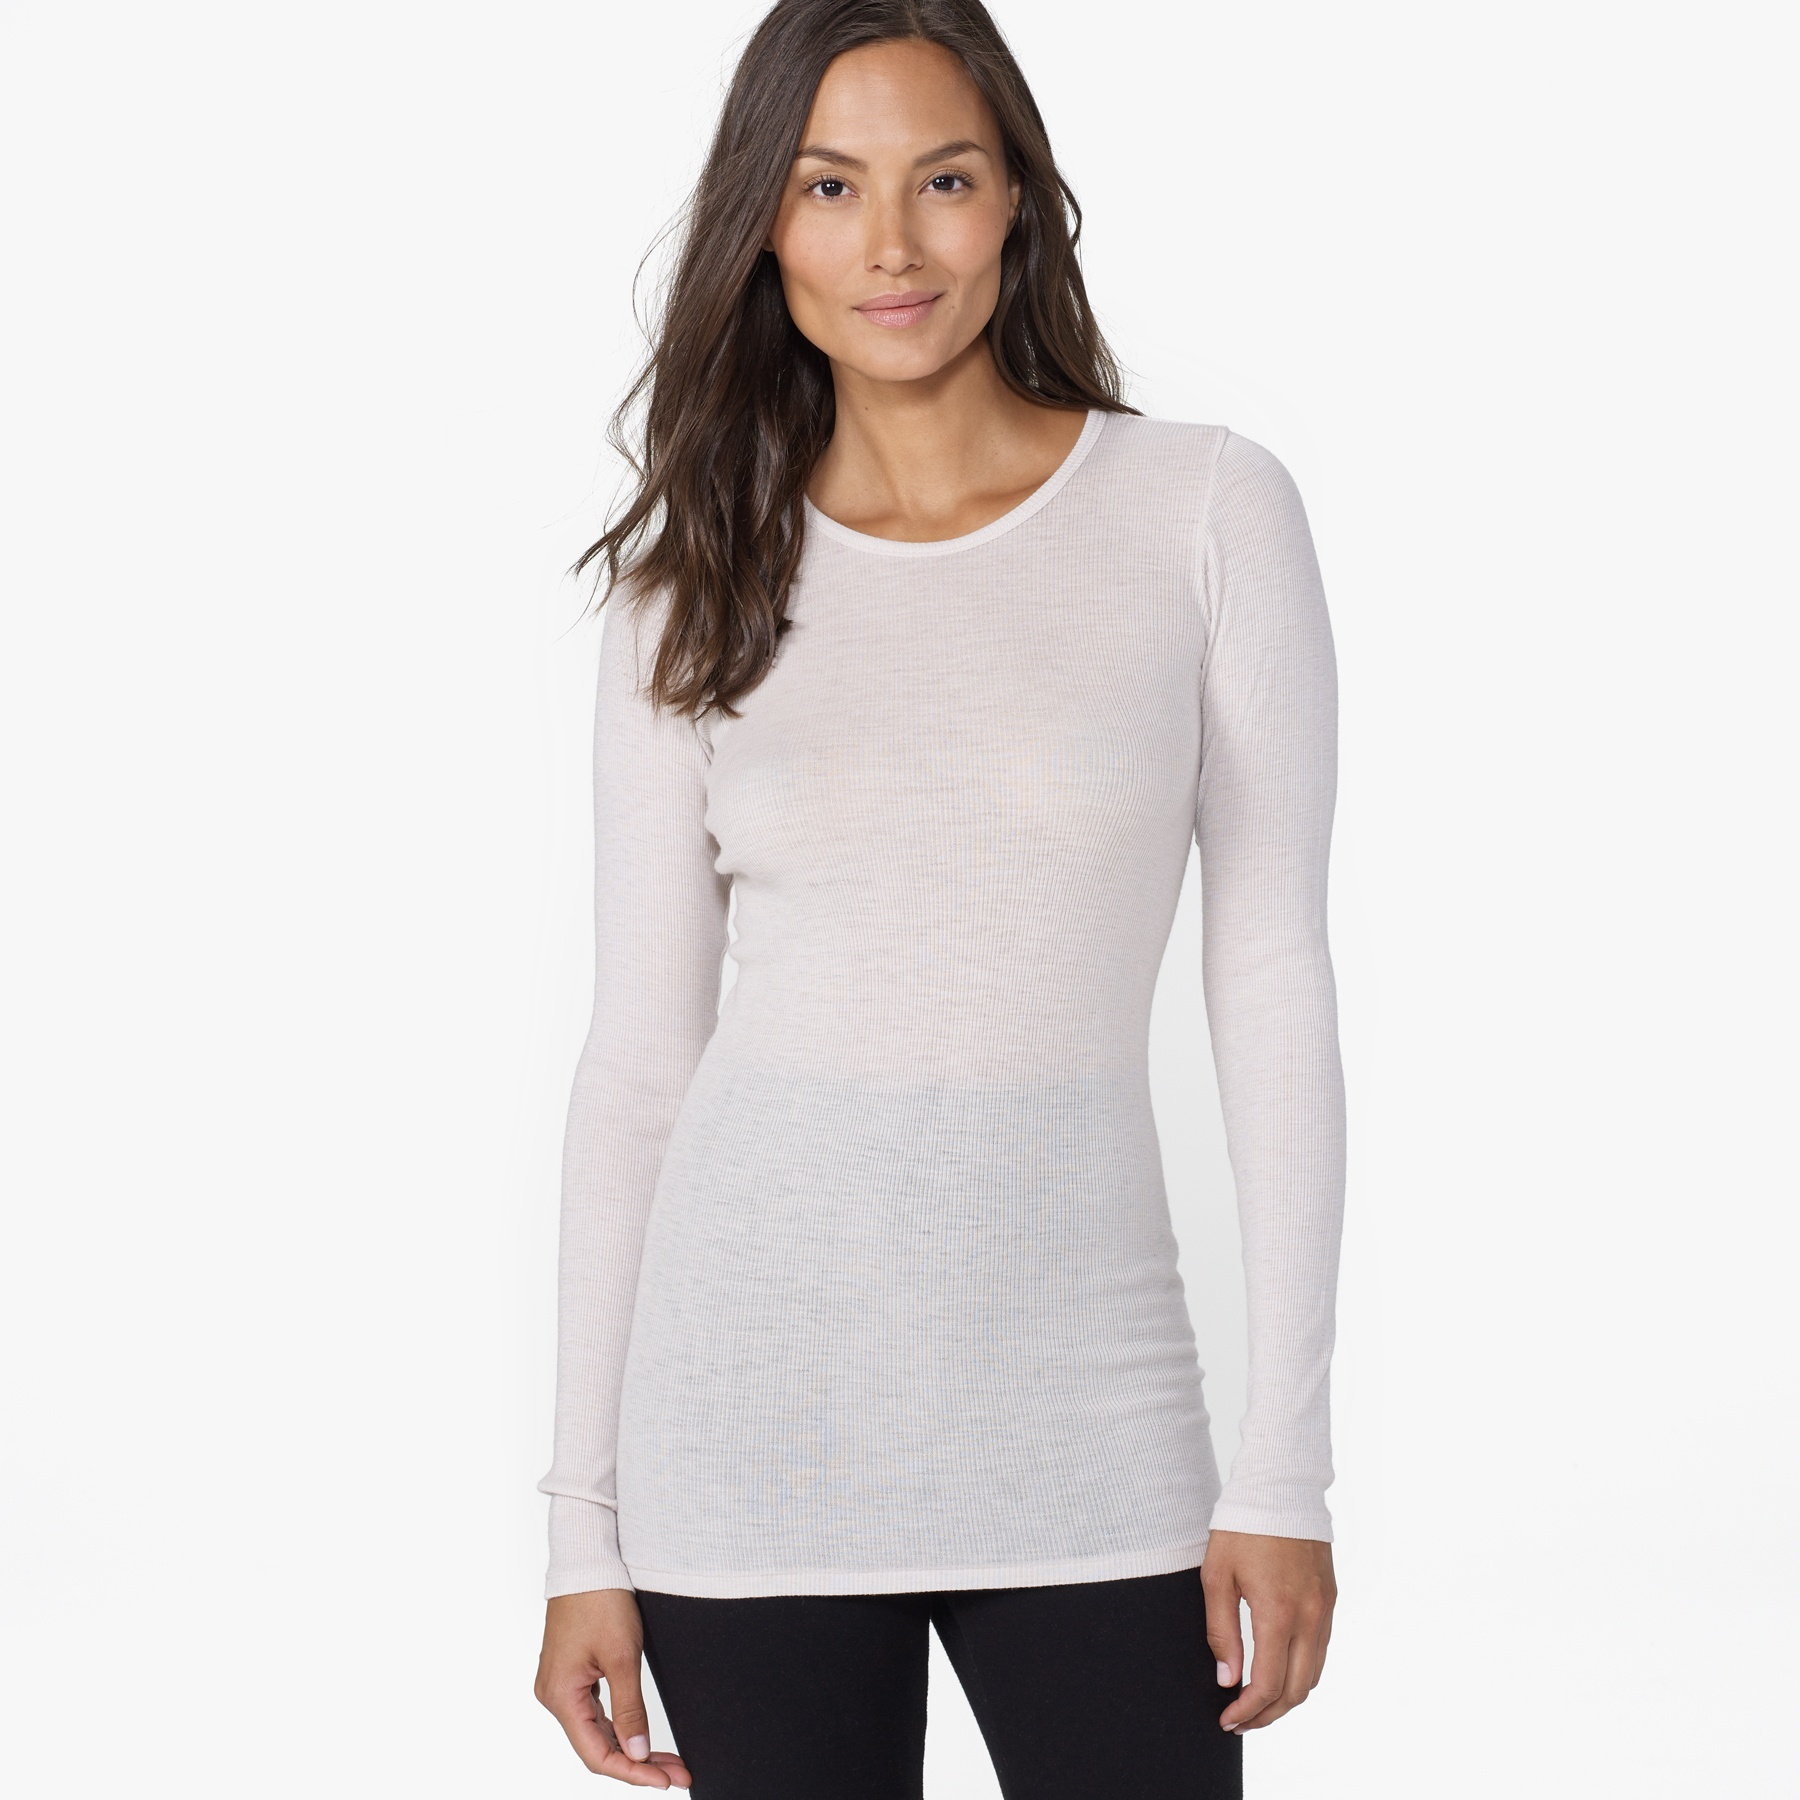 ad643beb73118d James Perse Ribbed Cashmere Long Sleeve Tee in White - Lyst